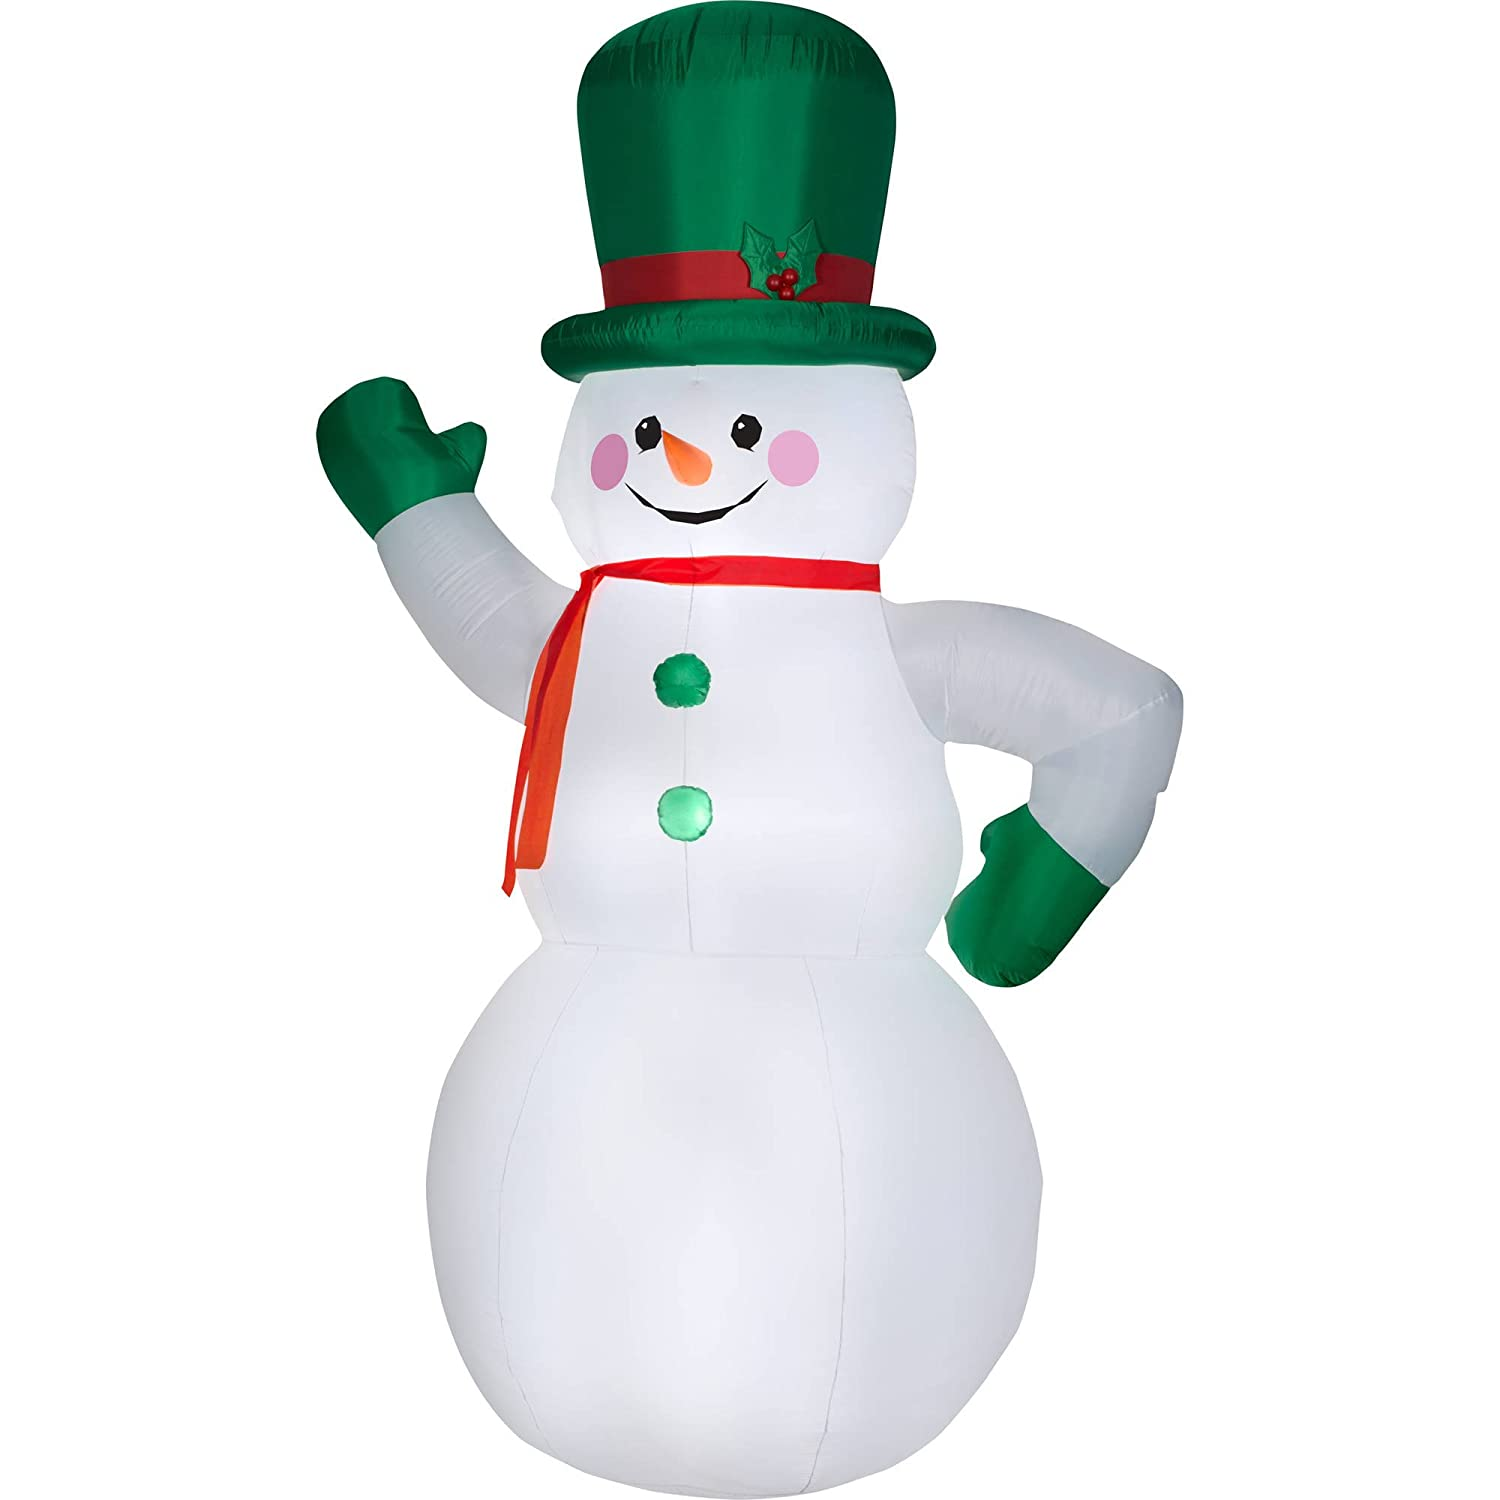 Amazon.com : Gemmy Snowman Green Mittens and Hat Inflatable Holiday ...